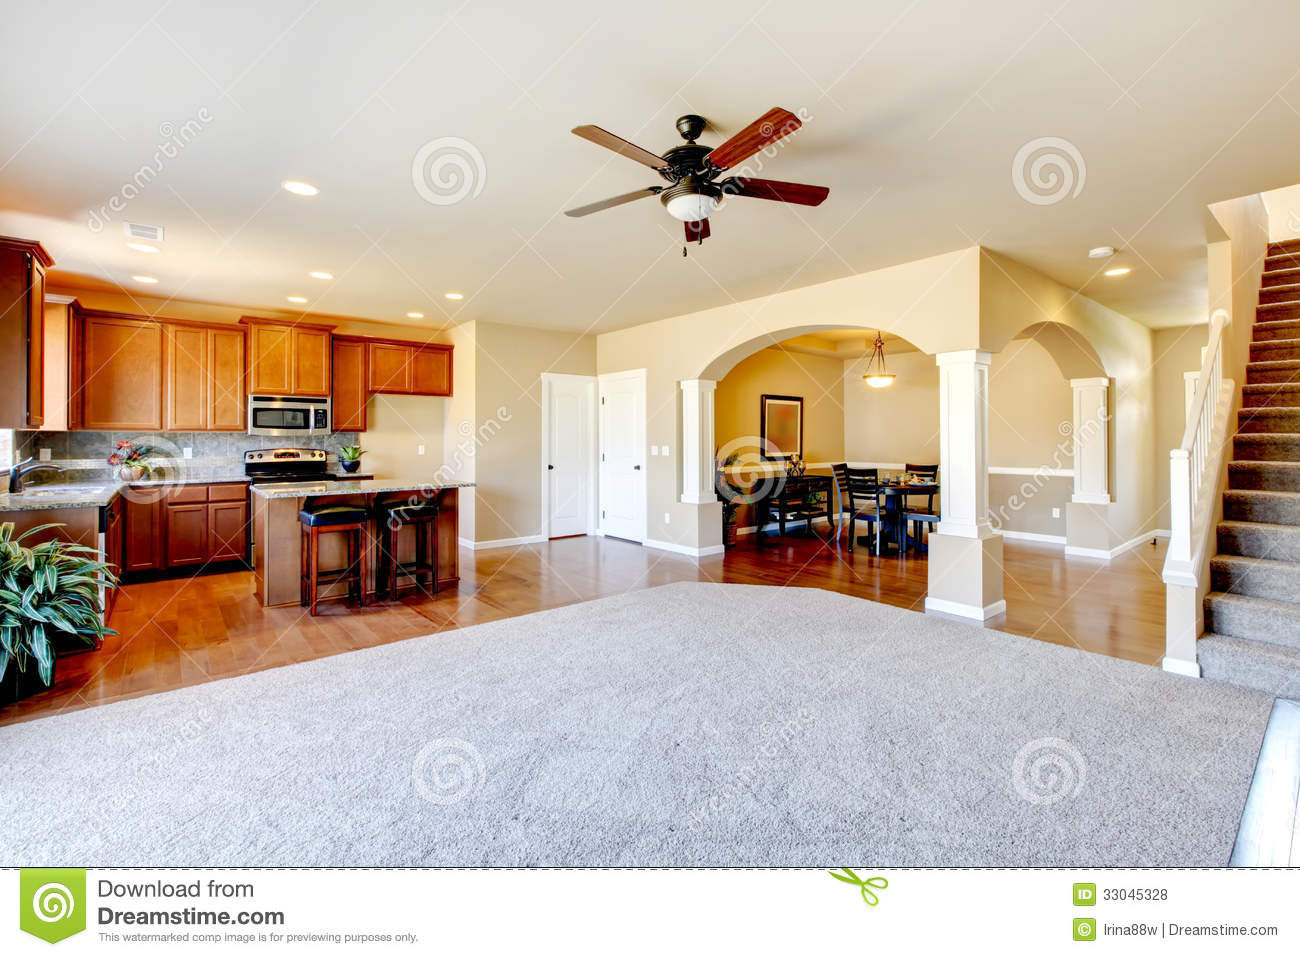 New home kitchen interior and living room interior stock for House plans with big kitchens and hearth rooms